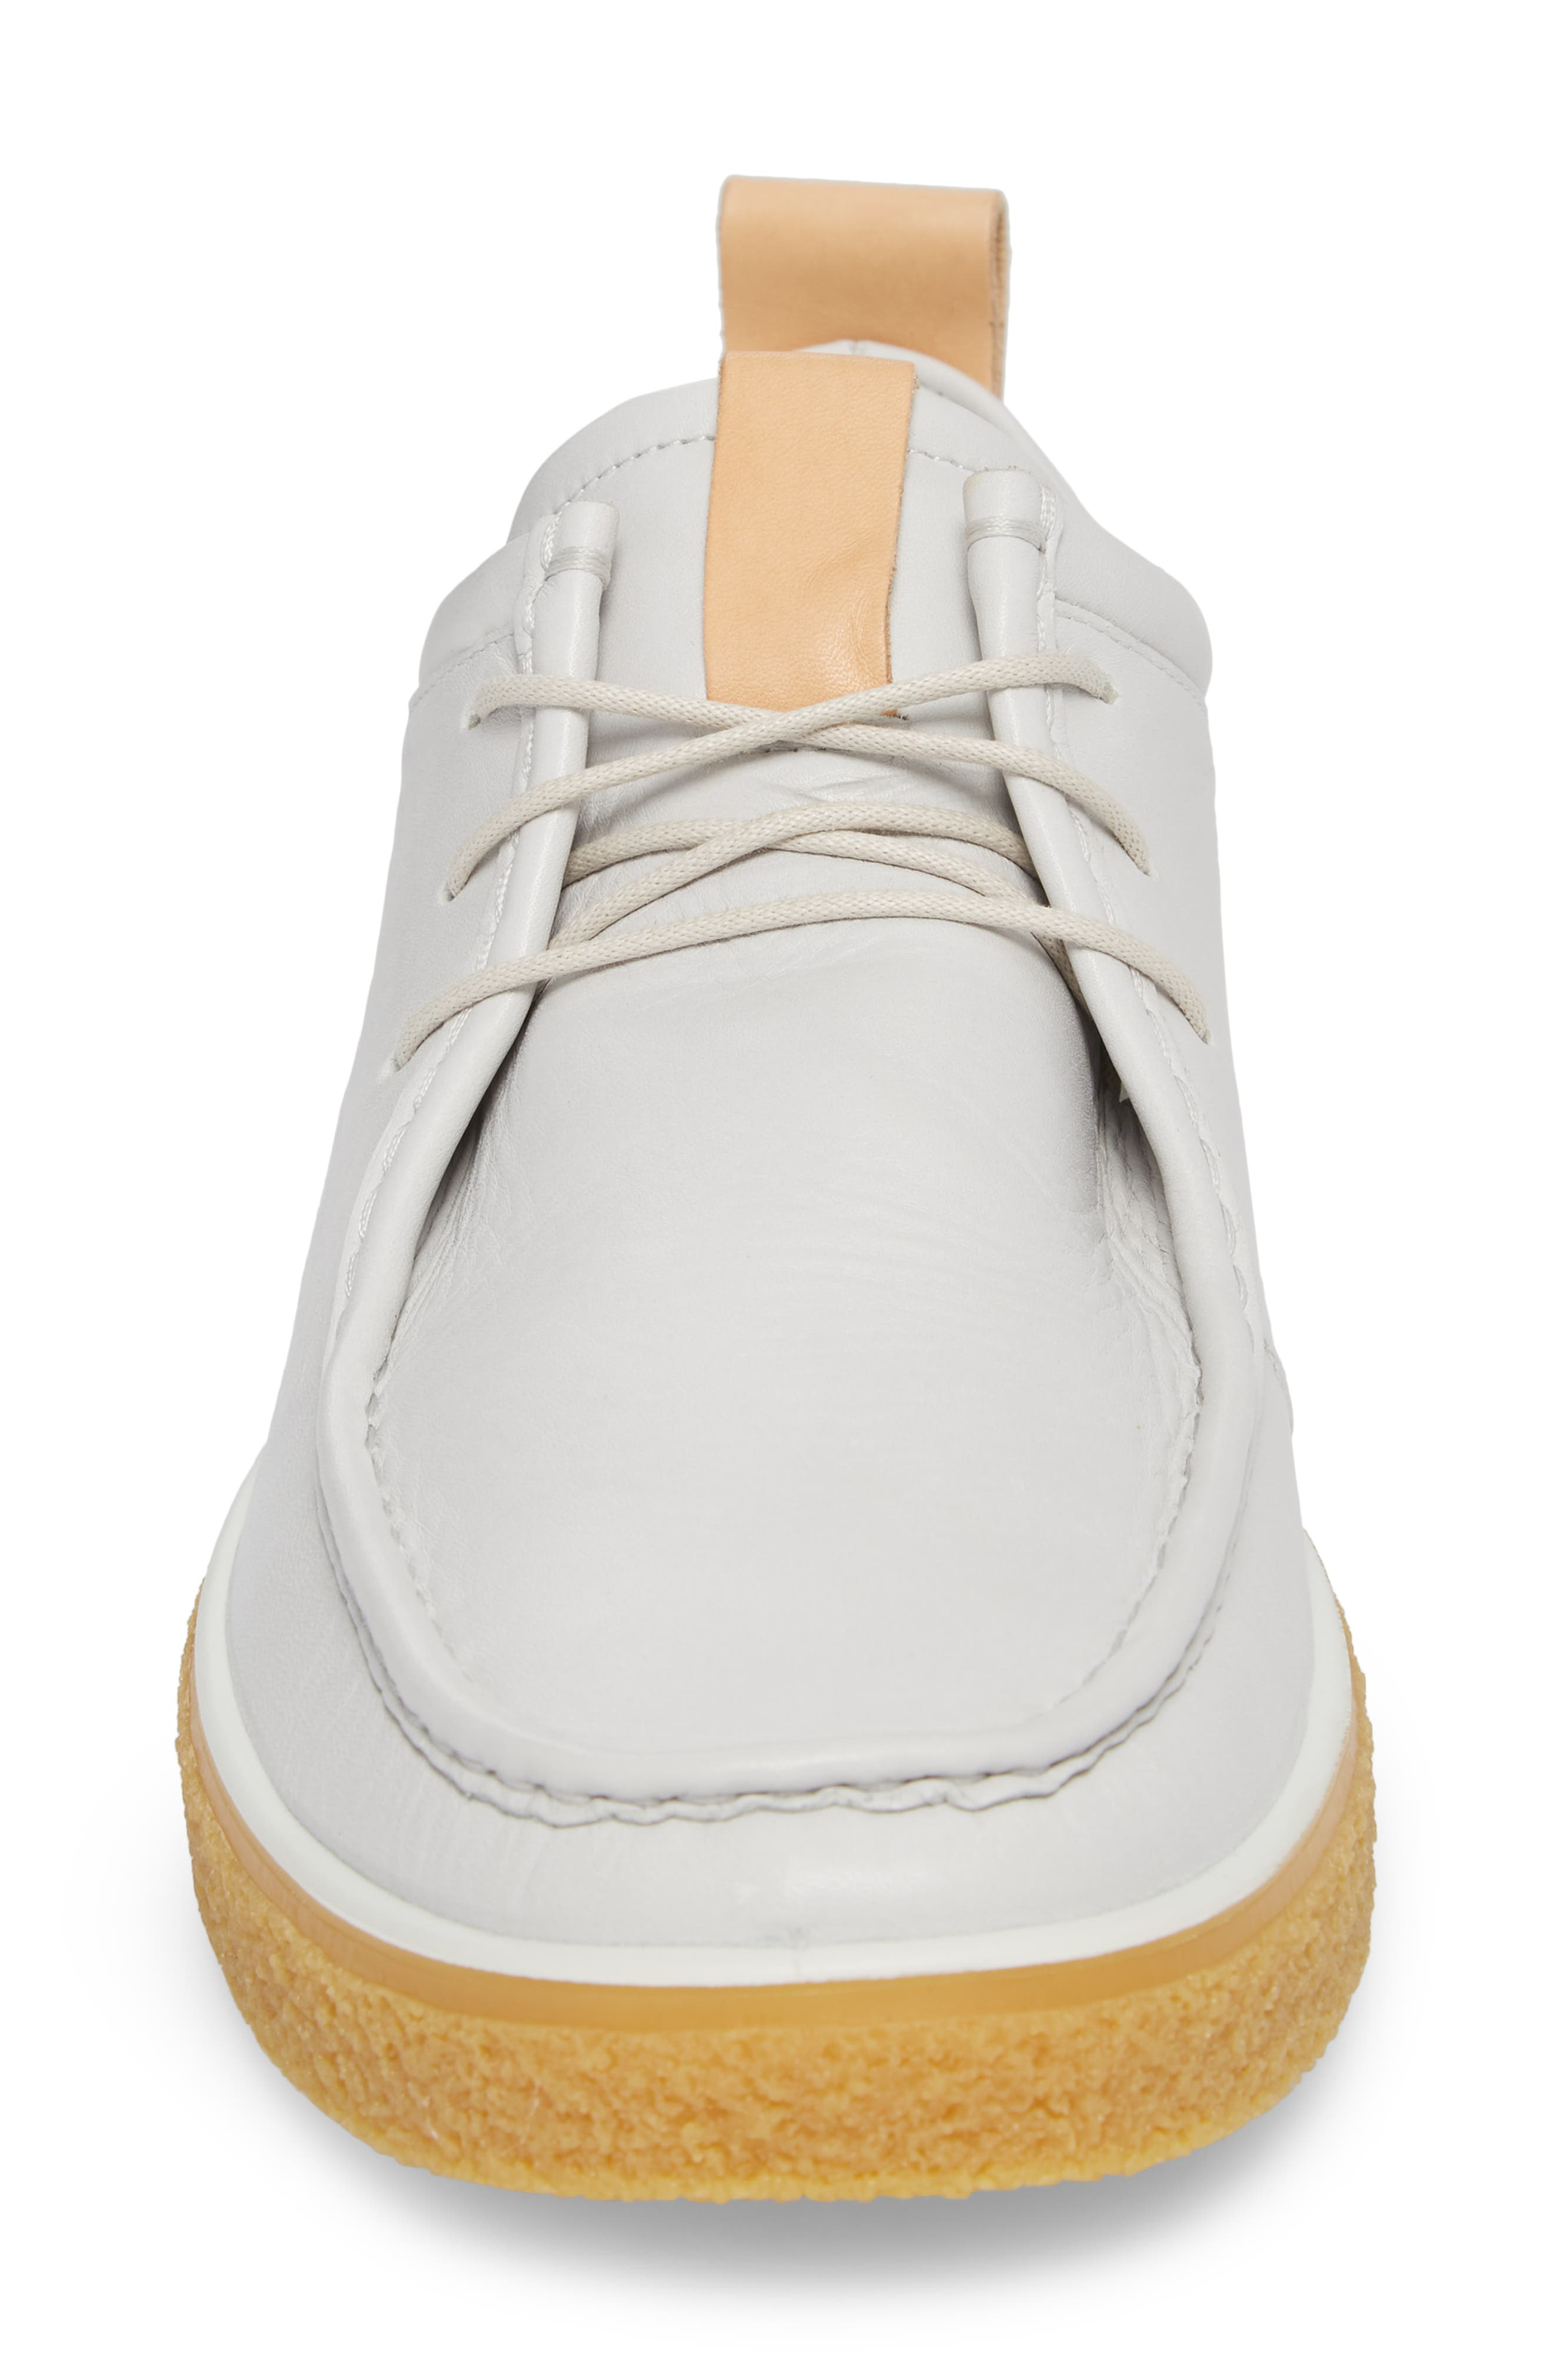 Crepetray Moc Toe Low Chukka Boot,                             Alternate thumbnail 4, color,                             Off White Leather